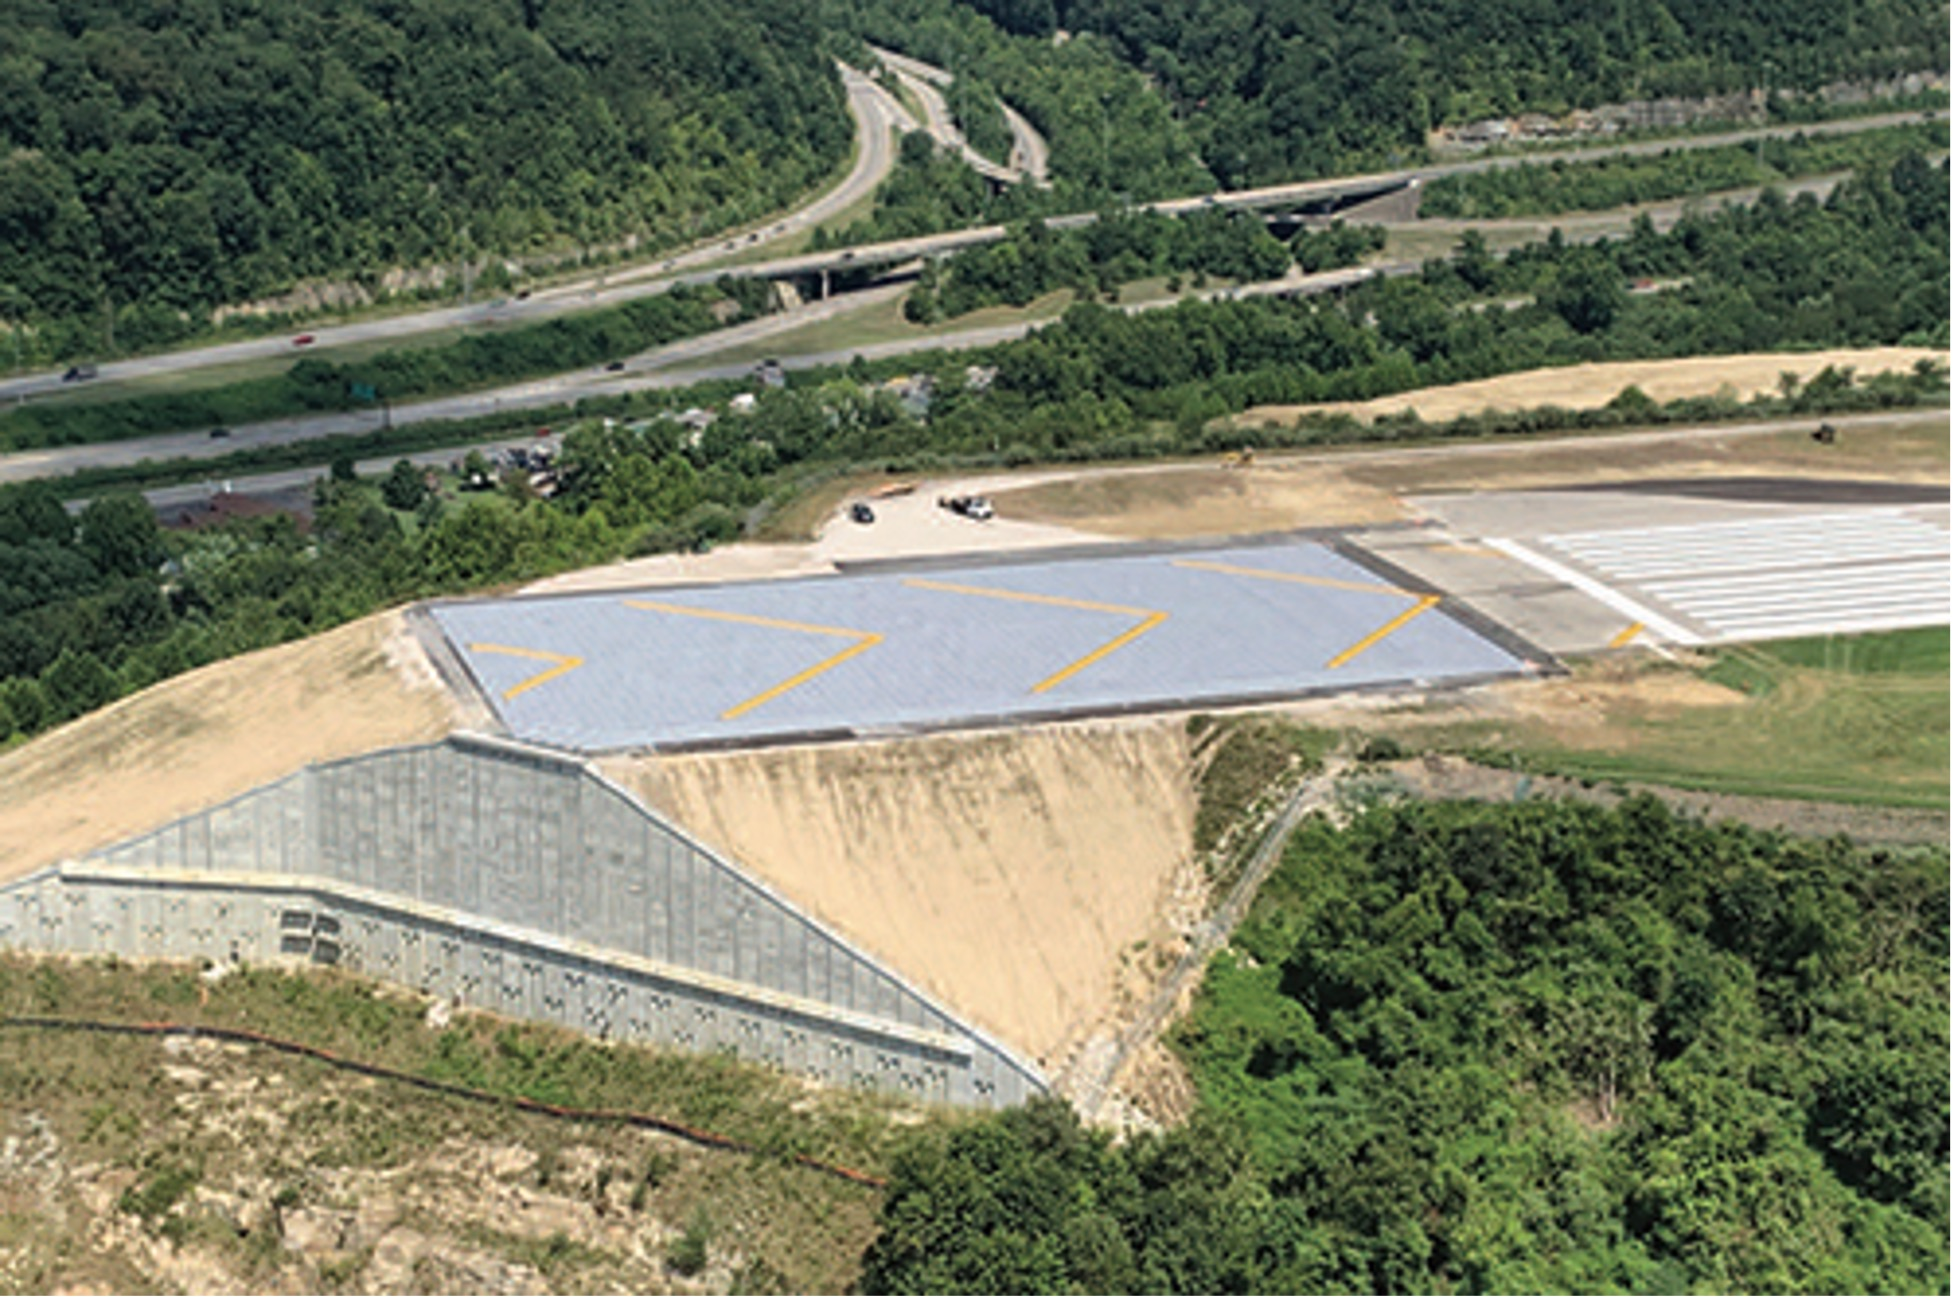 Geotechnical instrumentation helped monitor slope stability following a landslide.